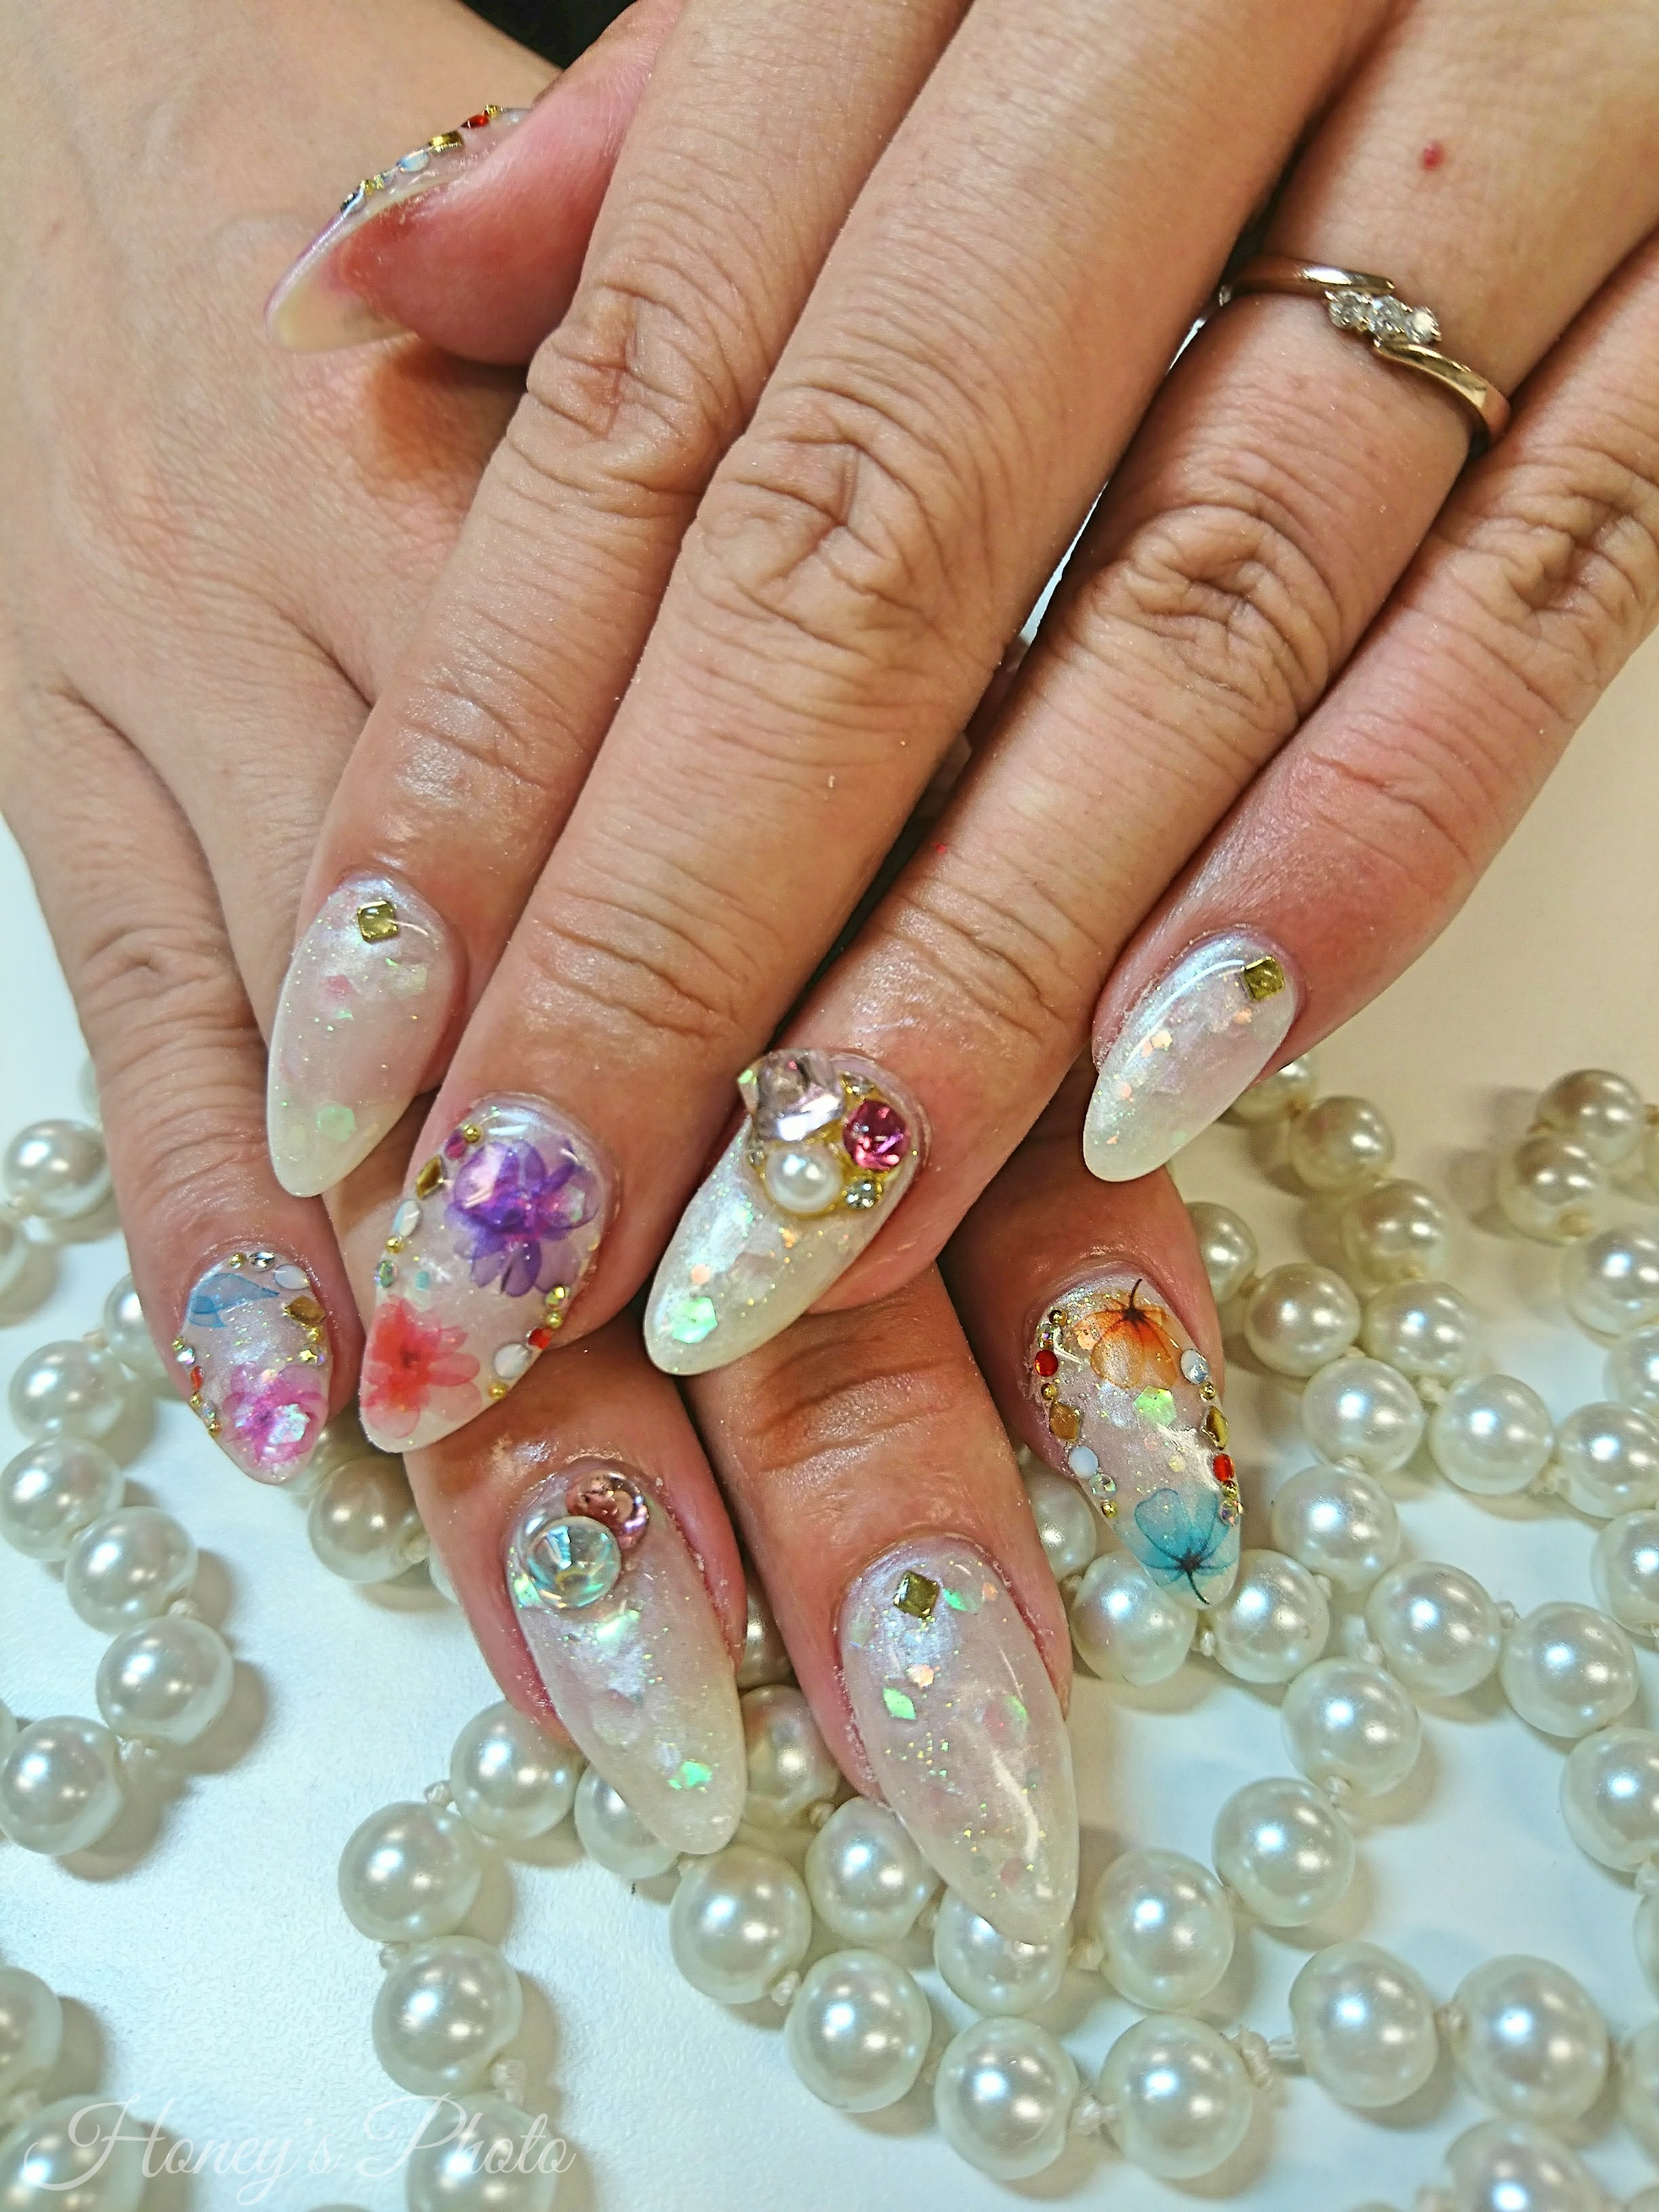 ☆Honey's Nail of May 2017☆